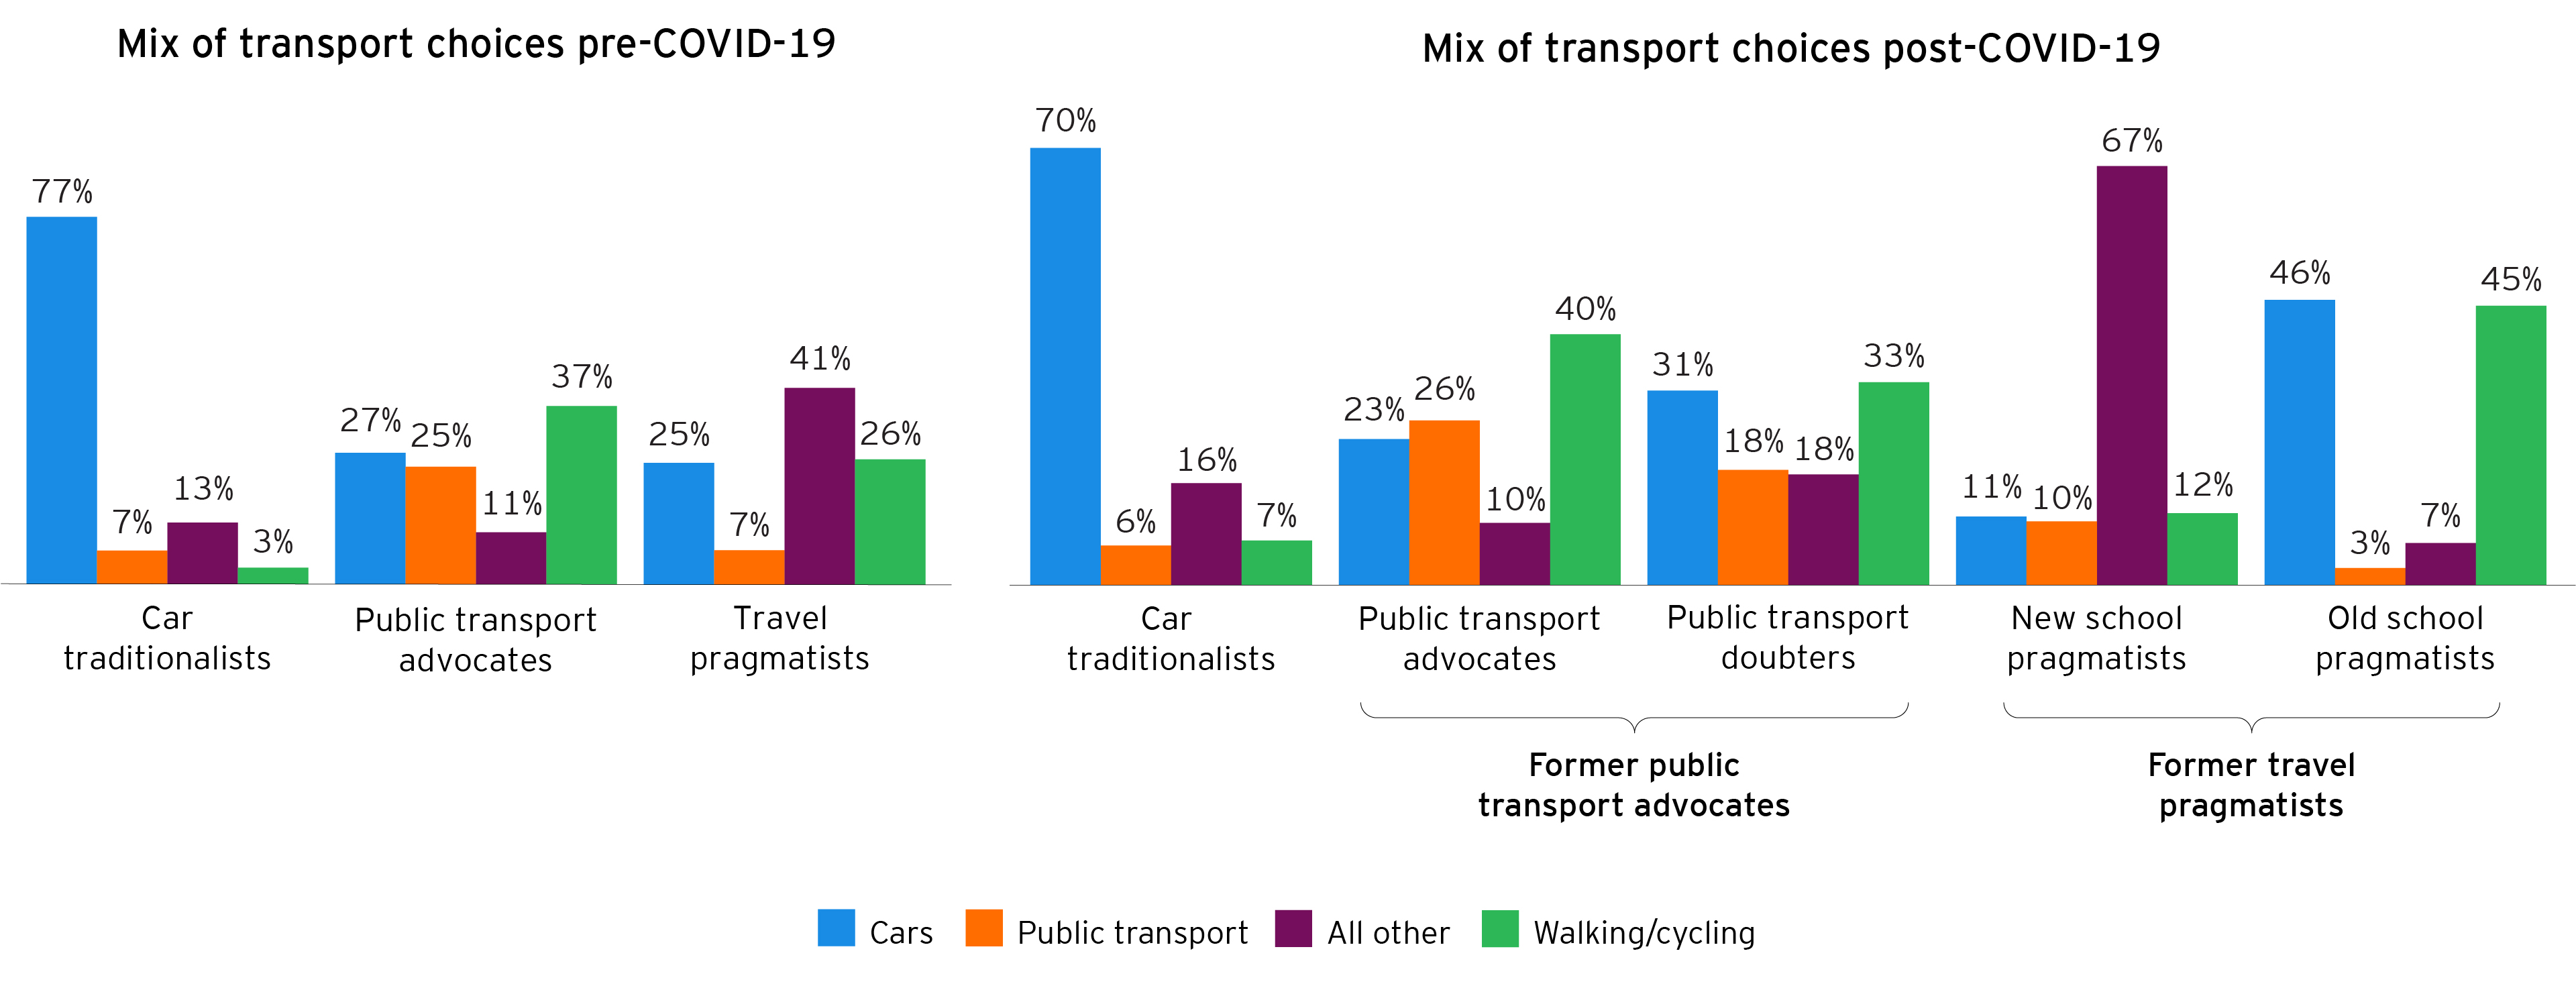 Mix of transport choices pre and post COVID-19